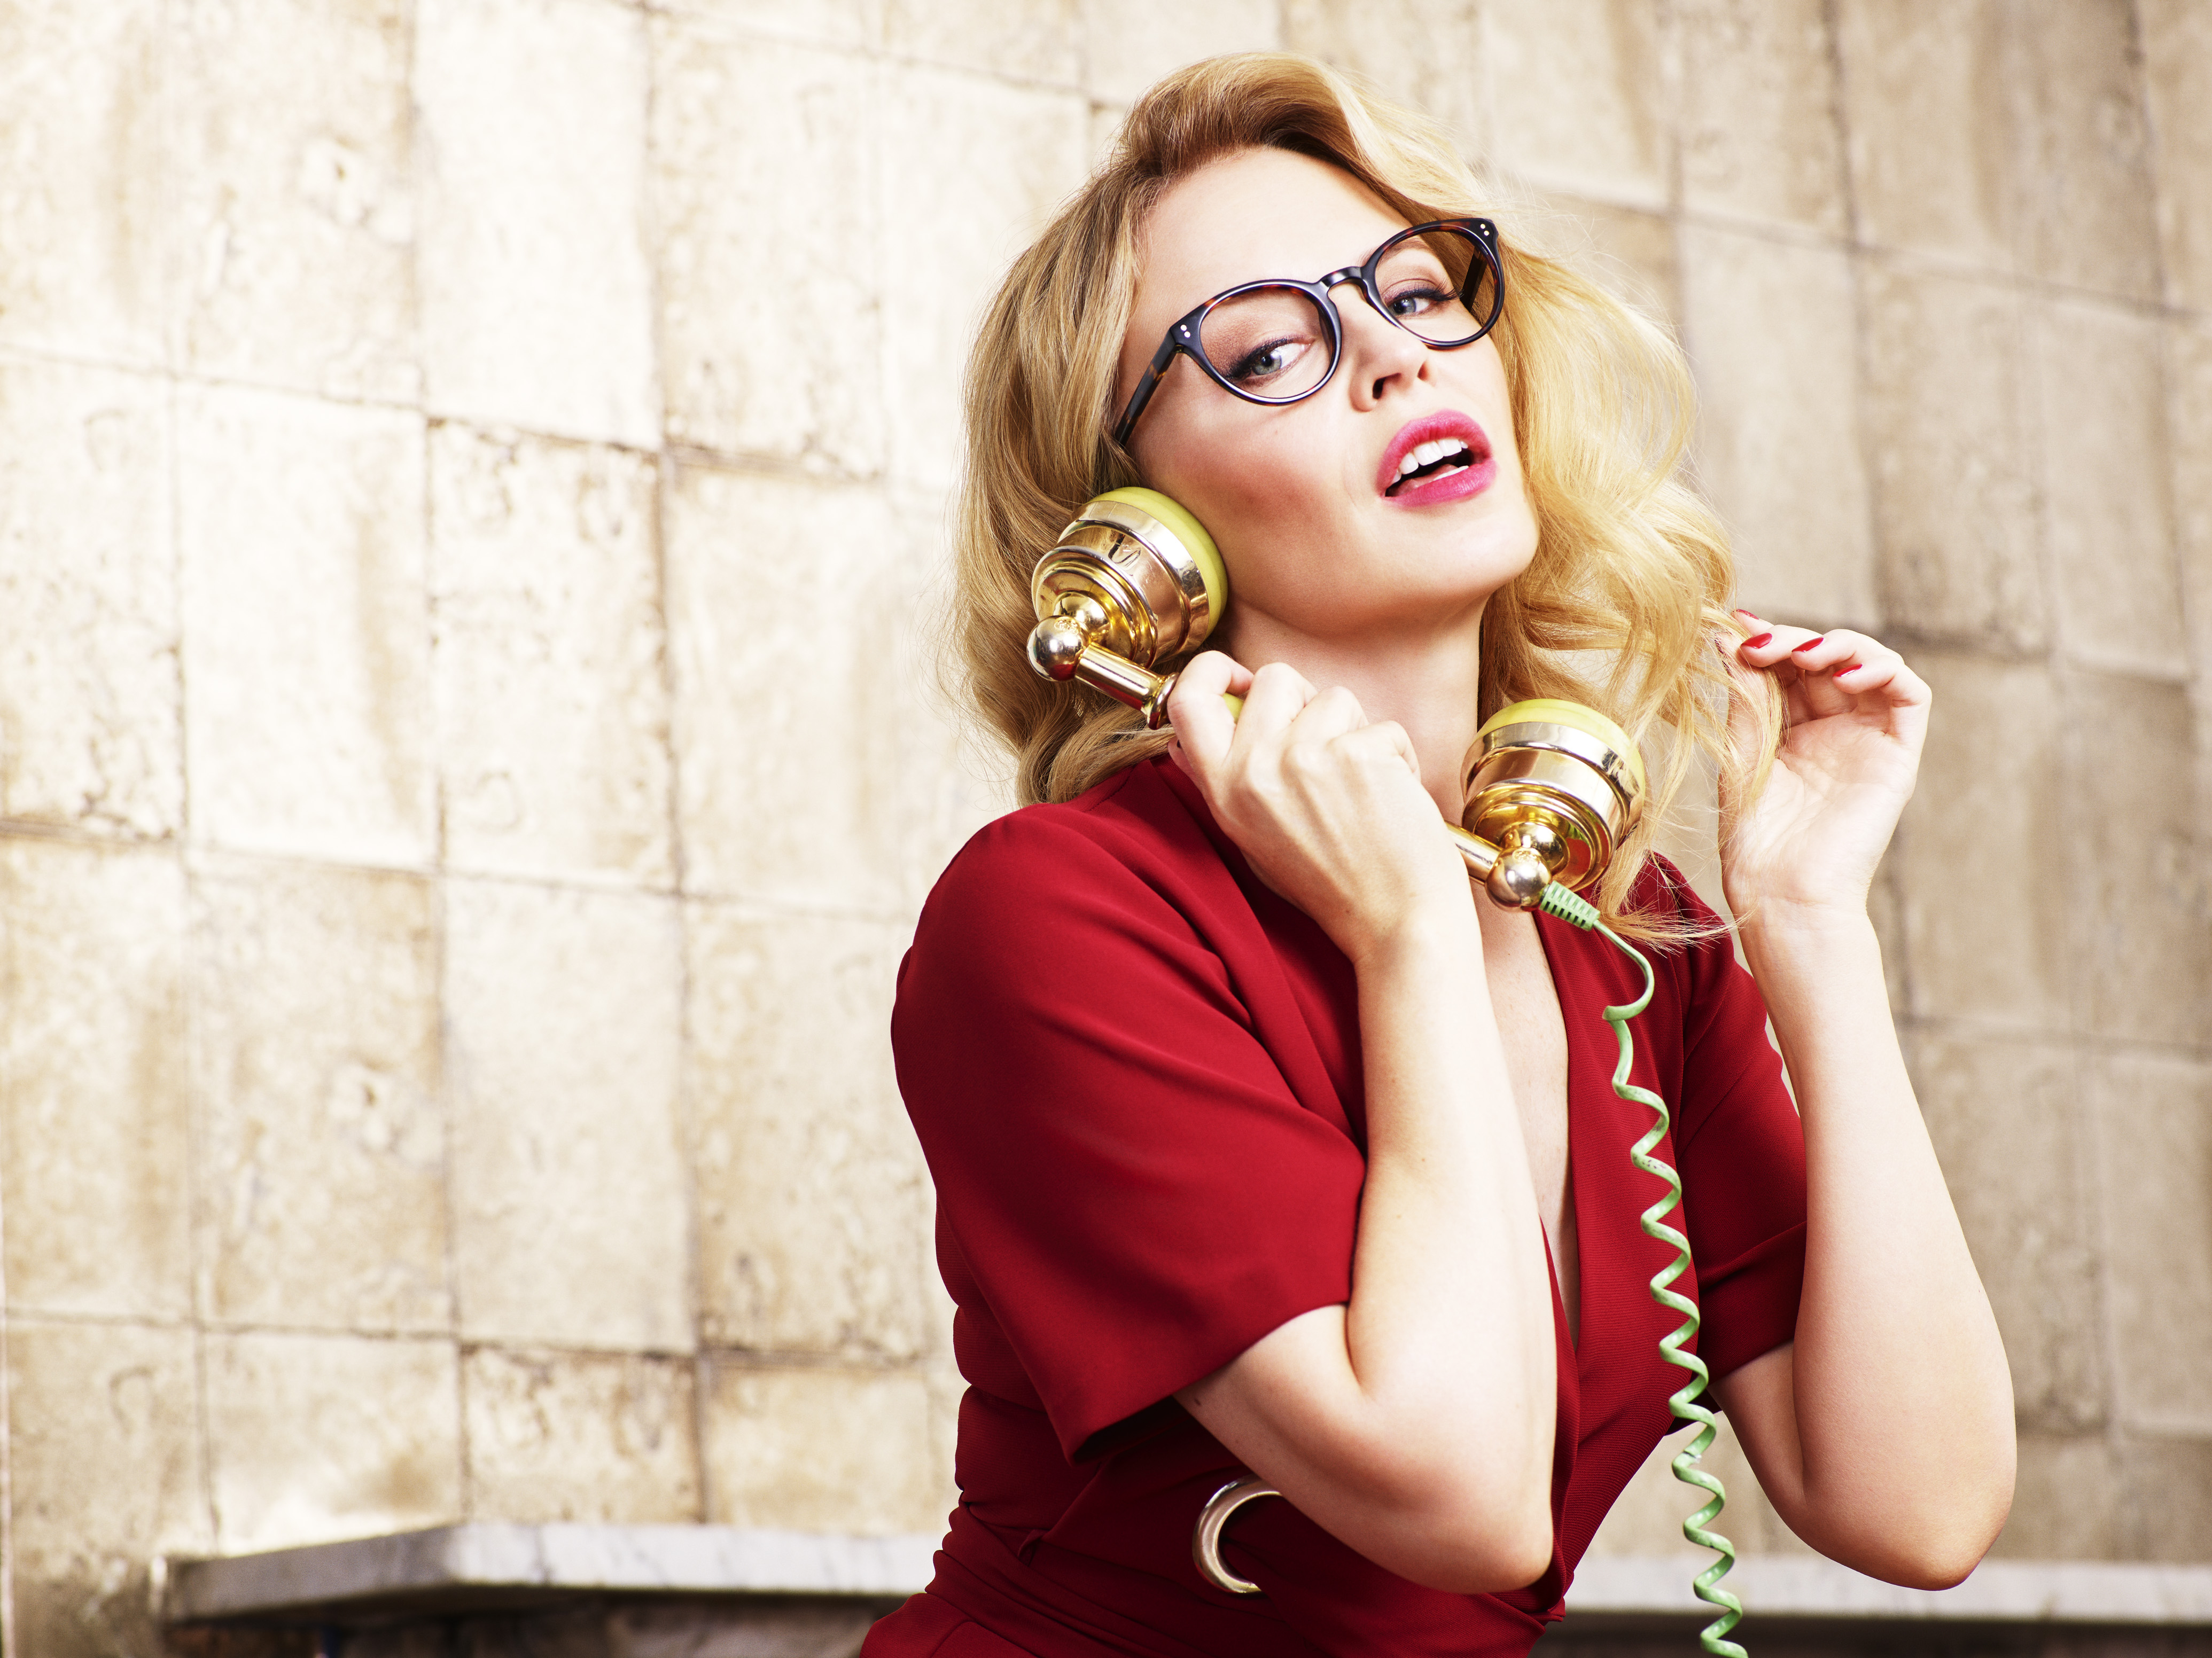 bd5097eff6 Kylie Minogue wearing glasses from her second collection with Specsavers  Minogue sporting more ...